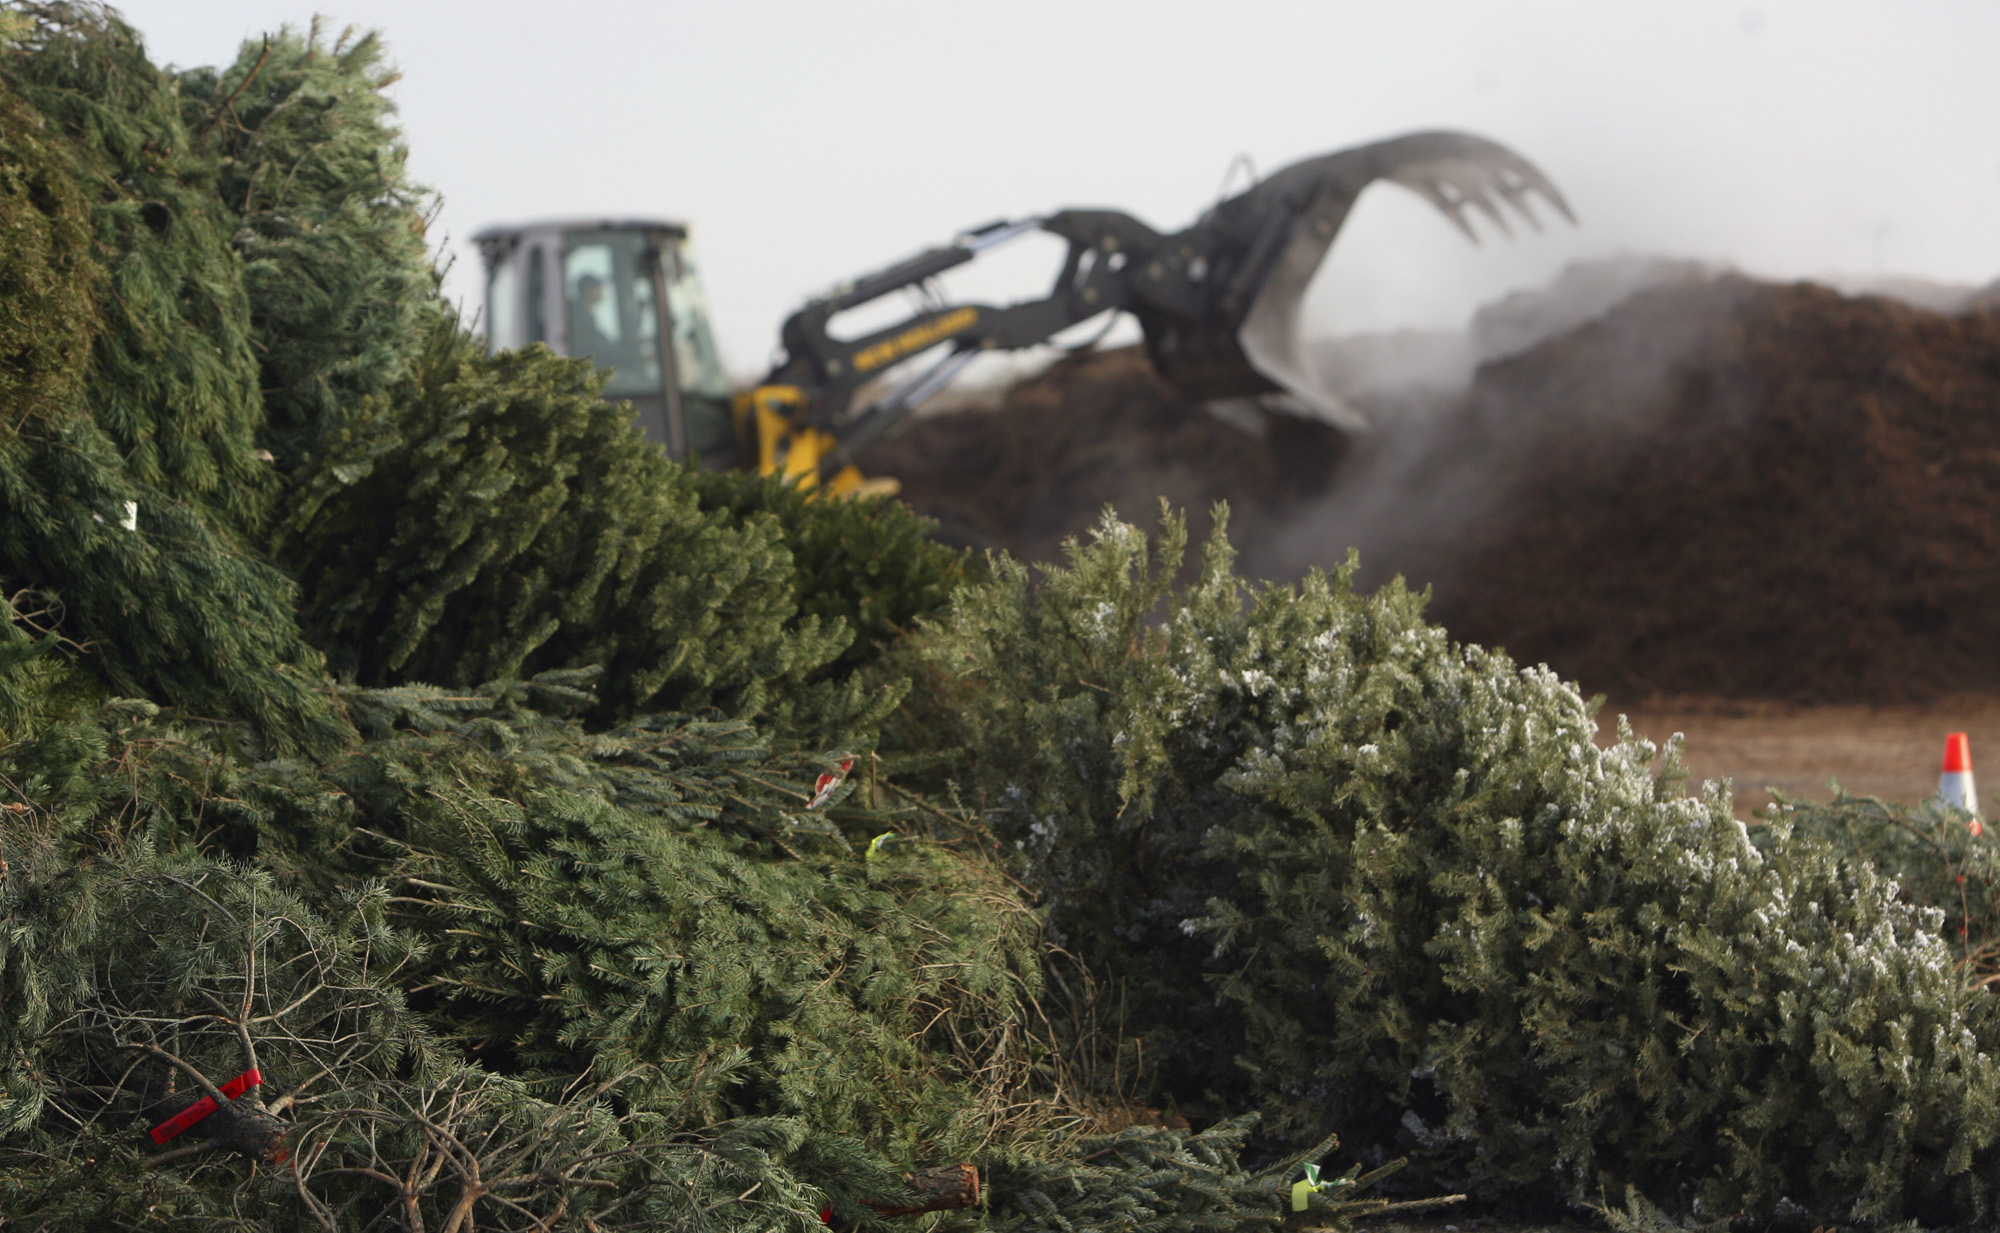 City to open Christmas tree recycling drop-off locations - SFGate